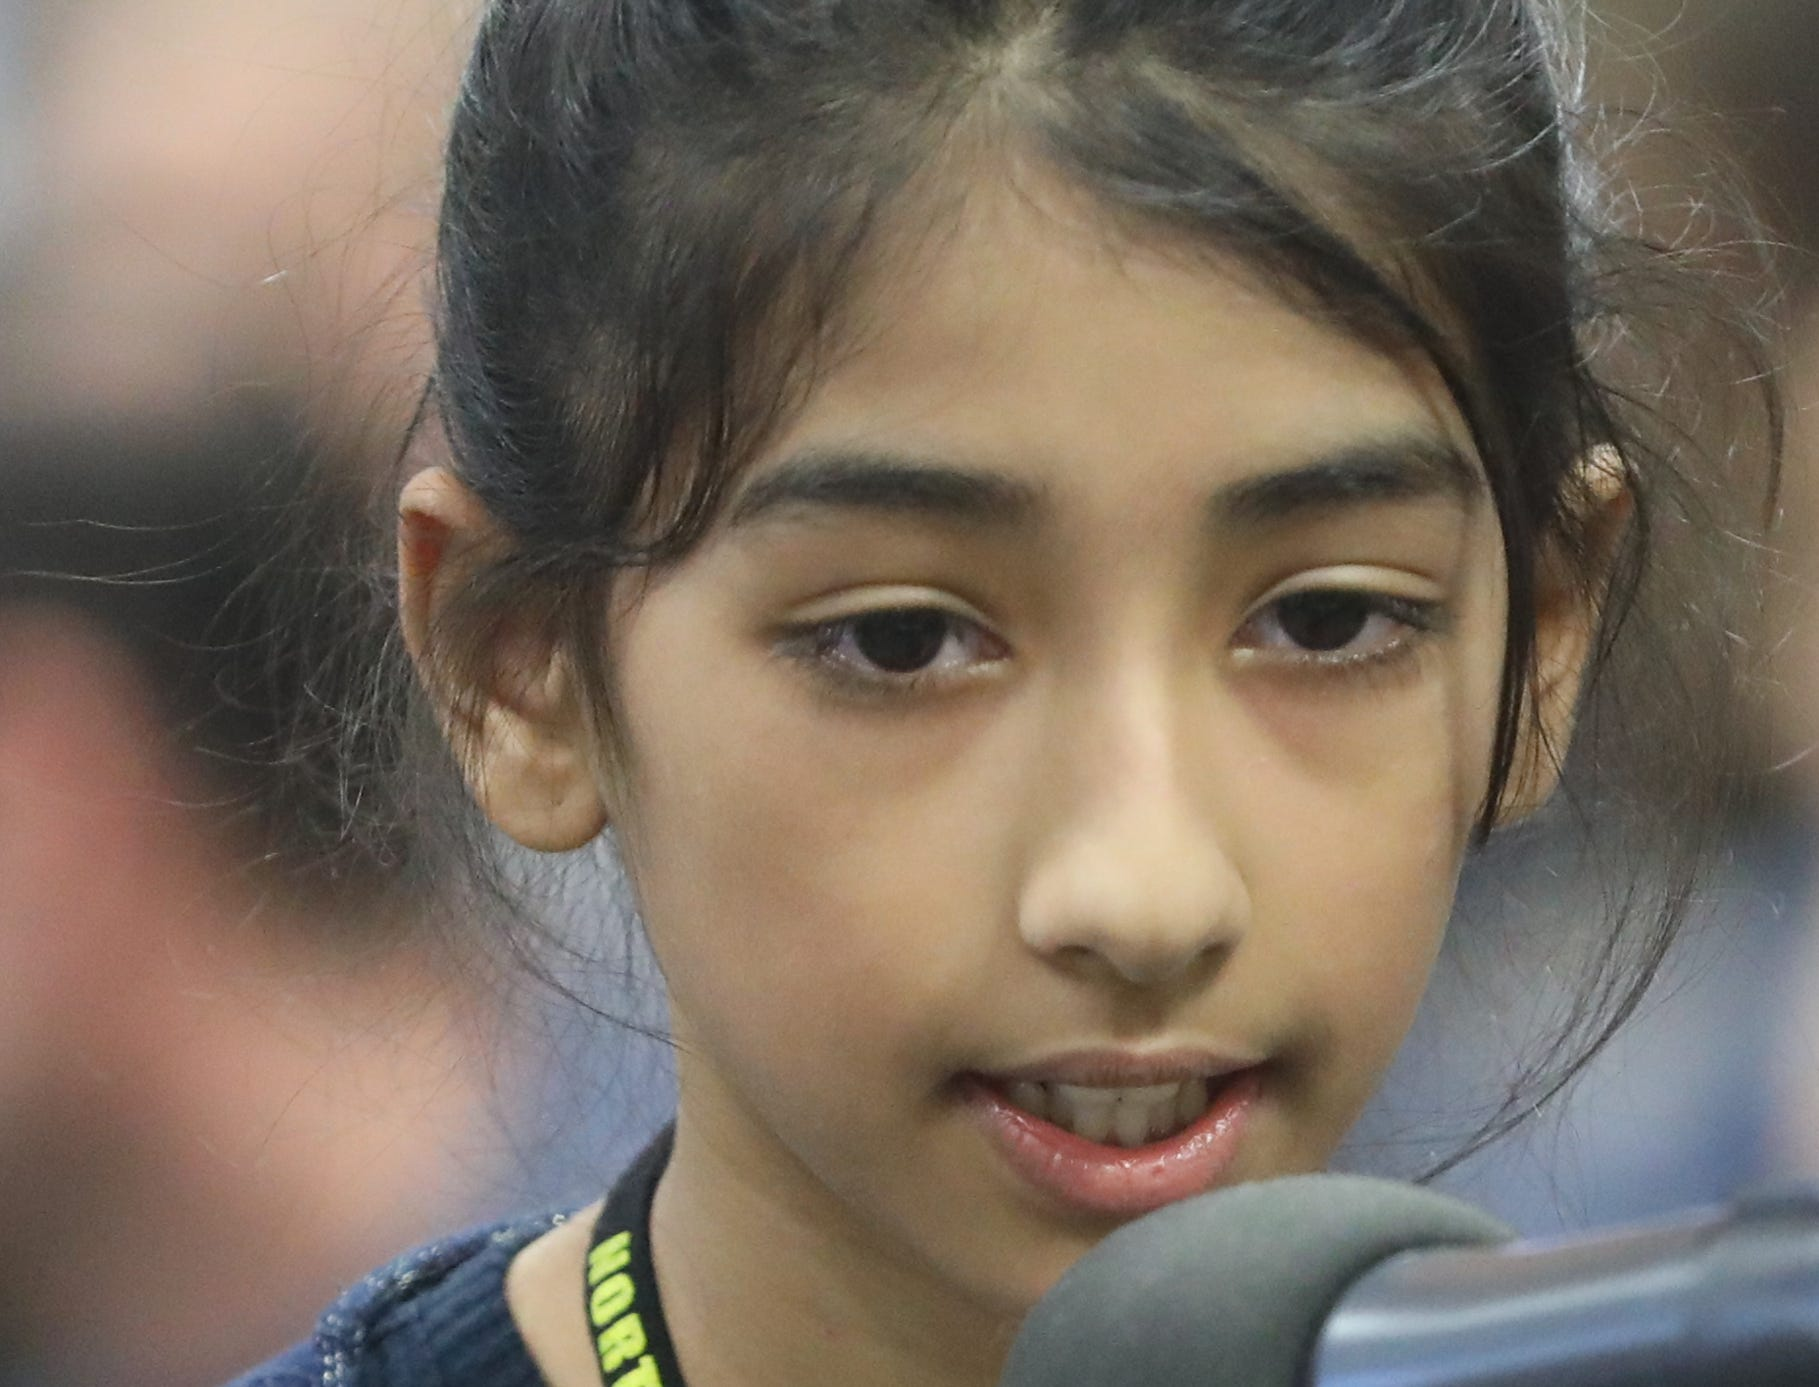 Suhani Pandya, of Englewood Cliffs, competes in the first round of the 2019 North Jersey Spelling Bee, in Paramus. Thursday, March 14, 2019